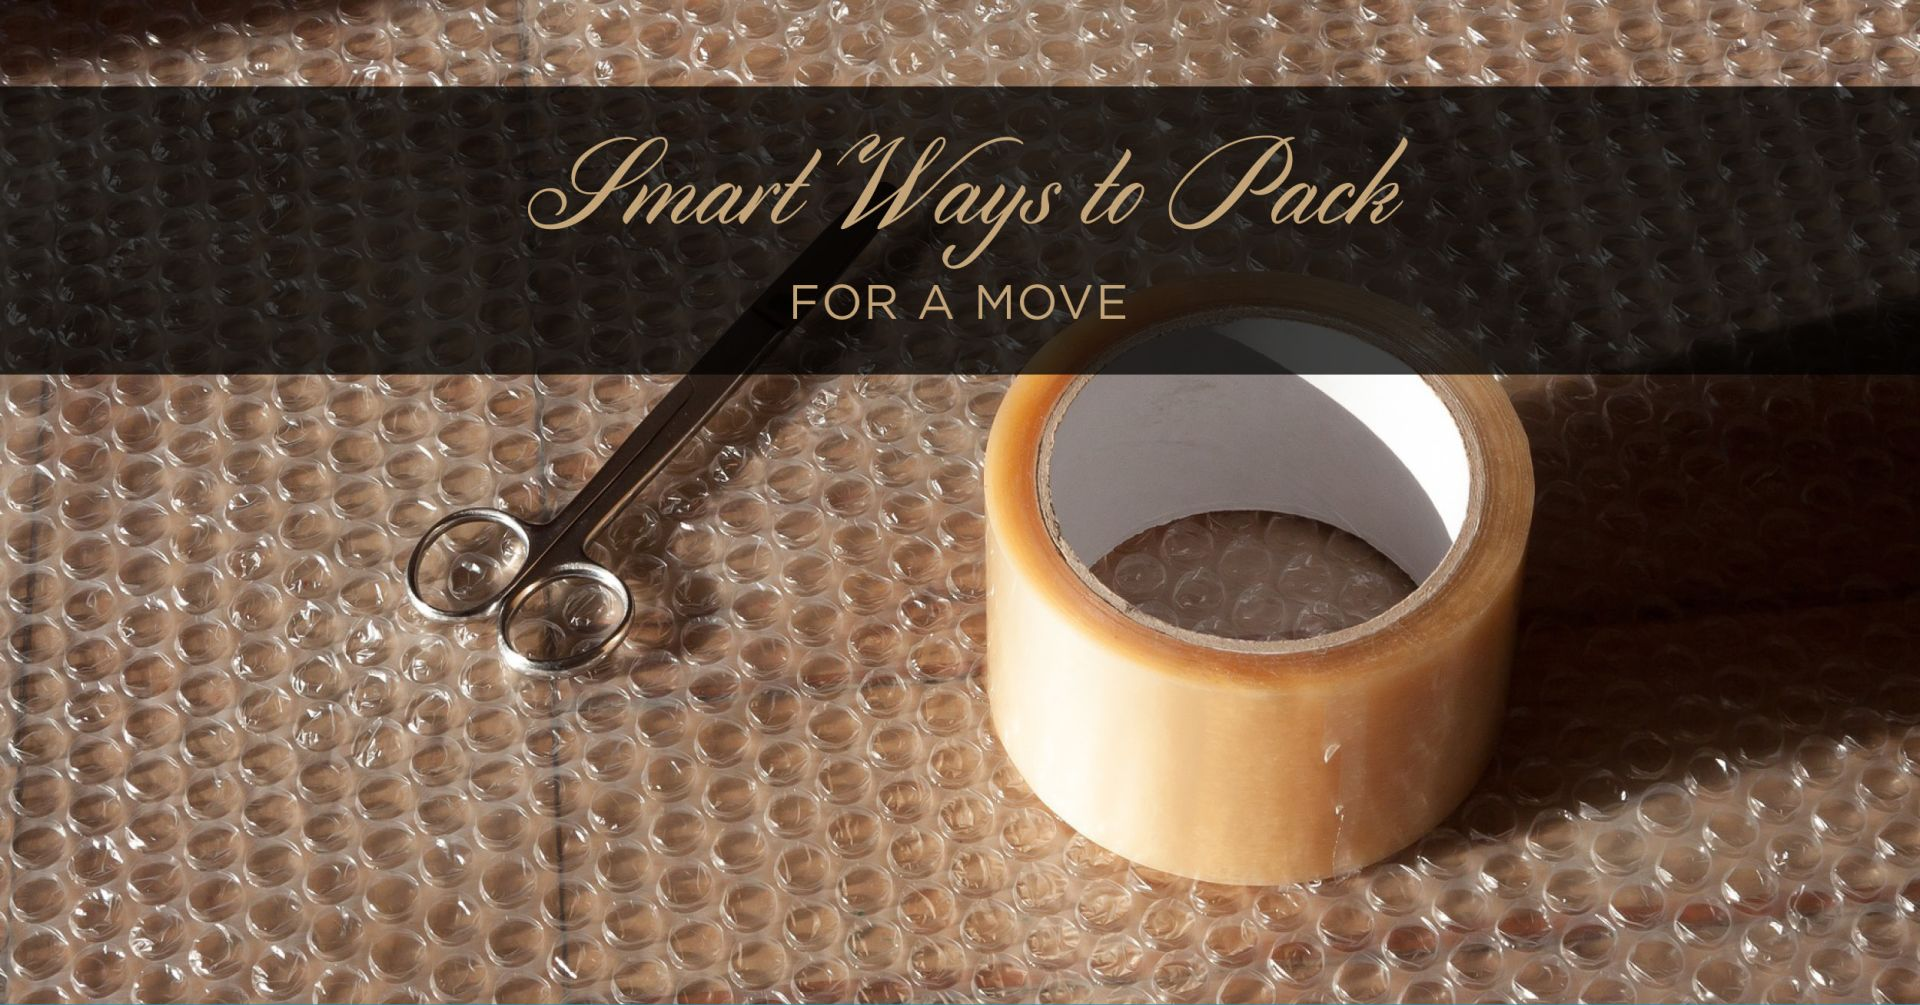 Smart Ways to Pack for a Move